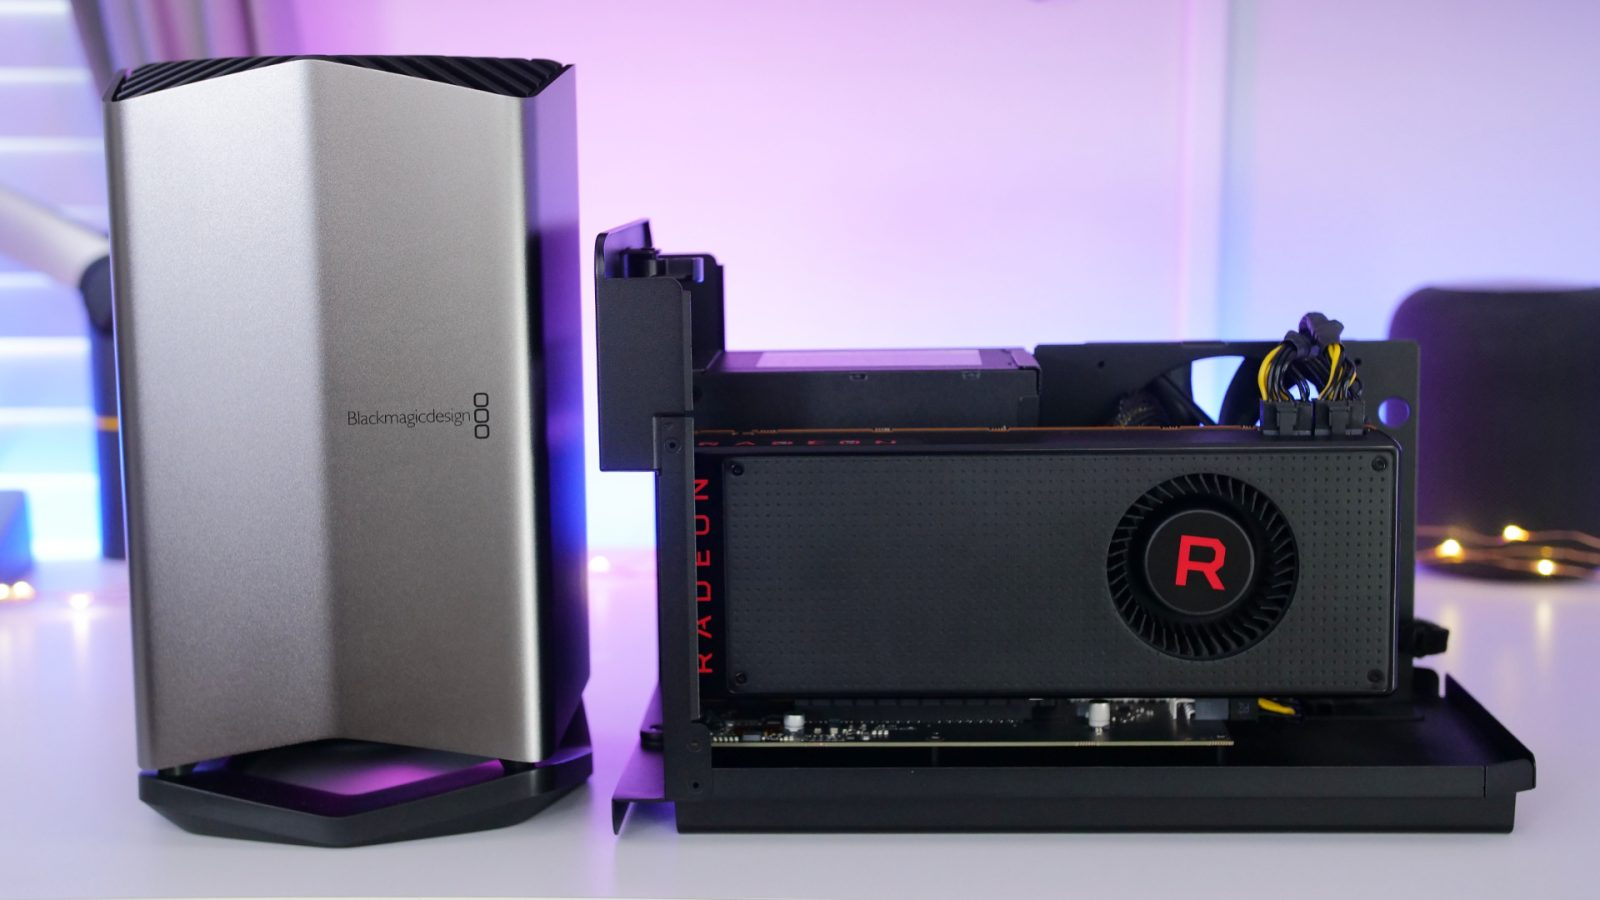 Compared: Razer Core X with RX Vega 64 vs Blackmagic eGPU